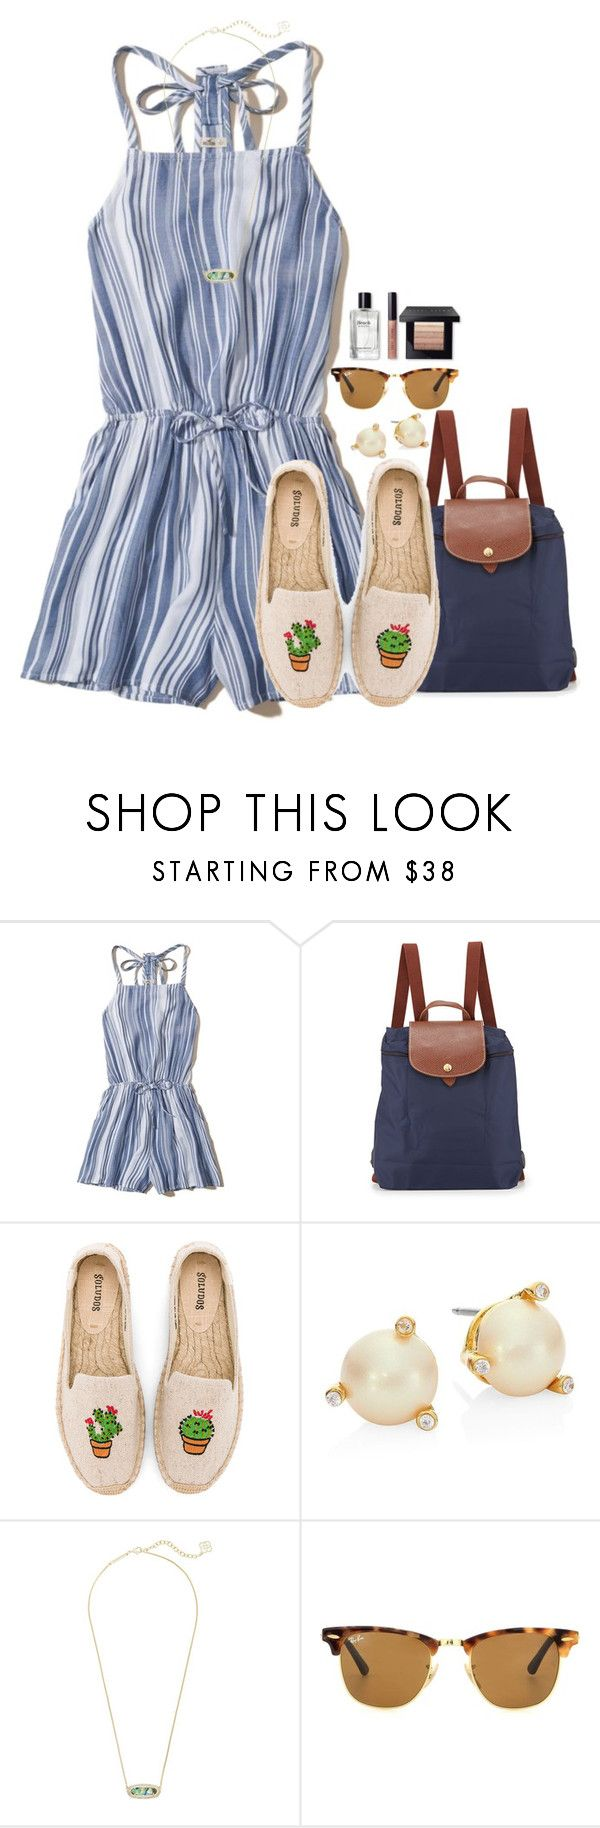 """""""~Im all about the palm trees and the 80 degrees~"""" by flroasburn ❤ liked on Polyvore featuring Hollister Co., Longchamp, Soludos, Kate Spade, Kendra Scott, Ray-Ban and Bobbi Brown Cosmetics"""